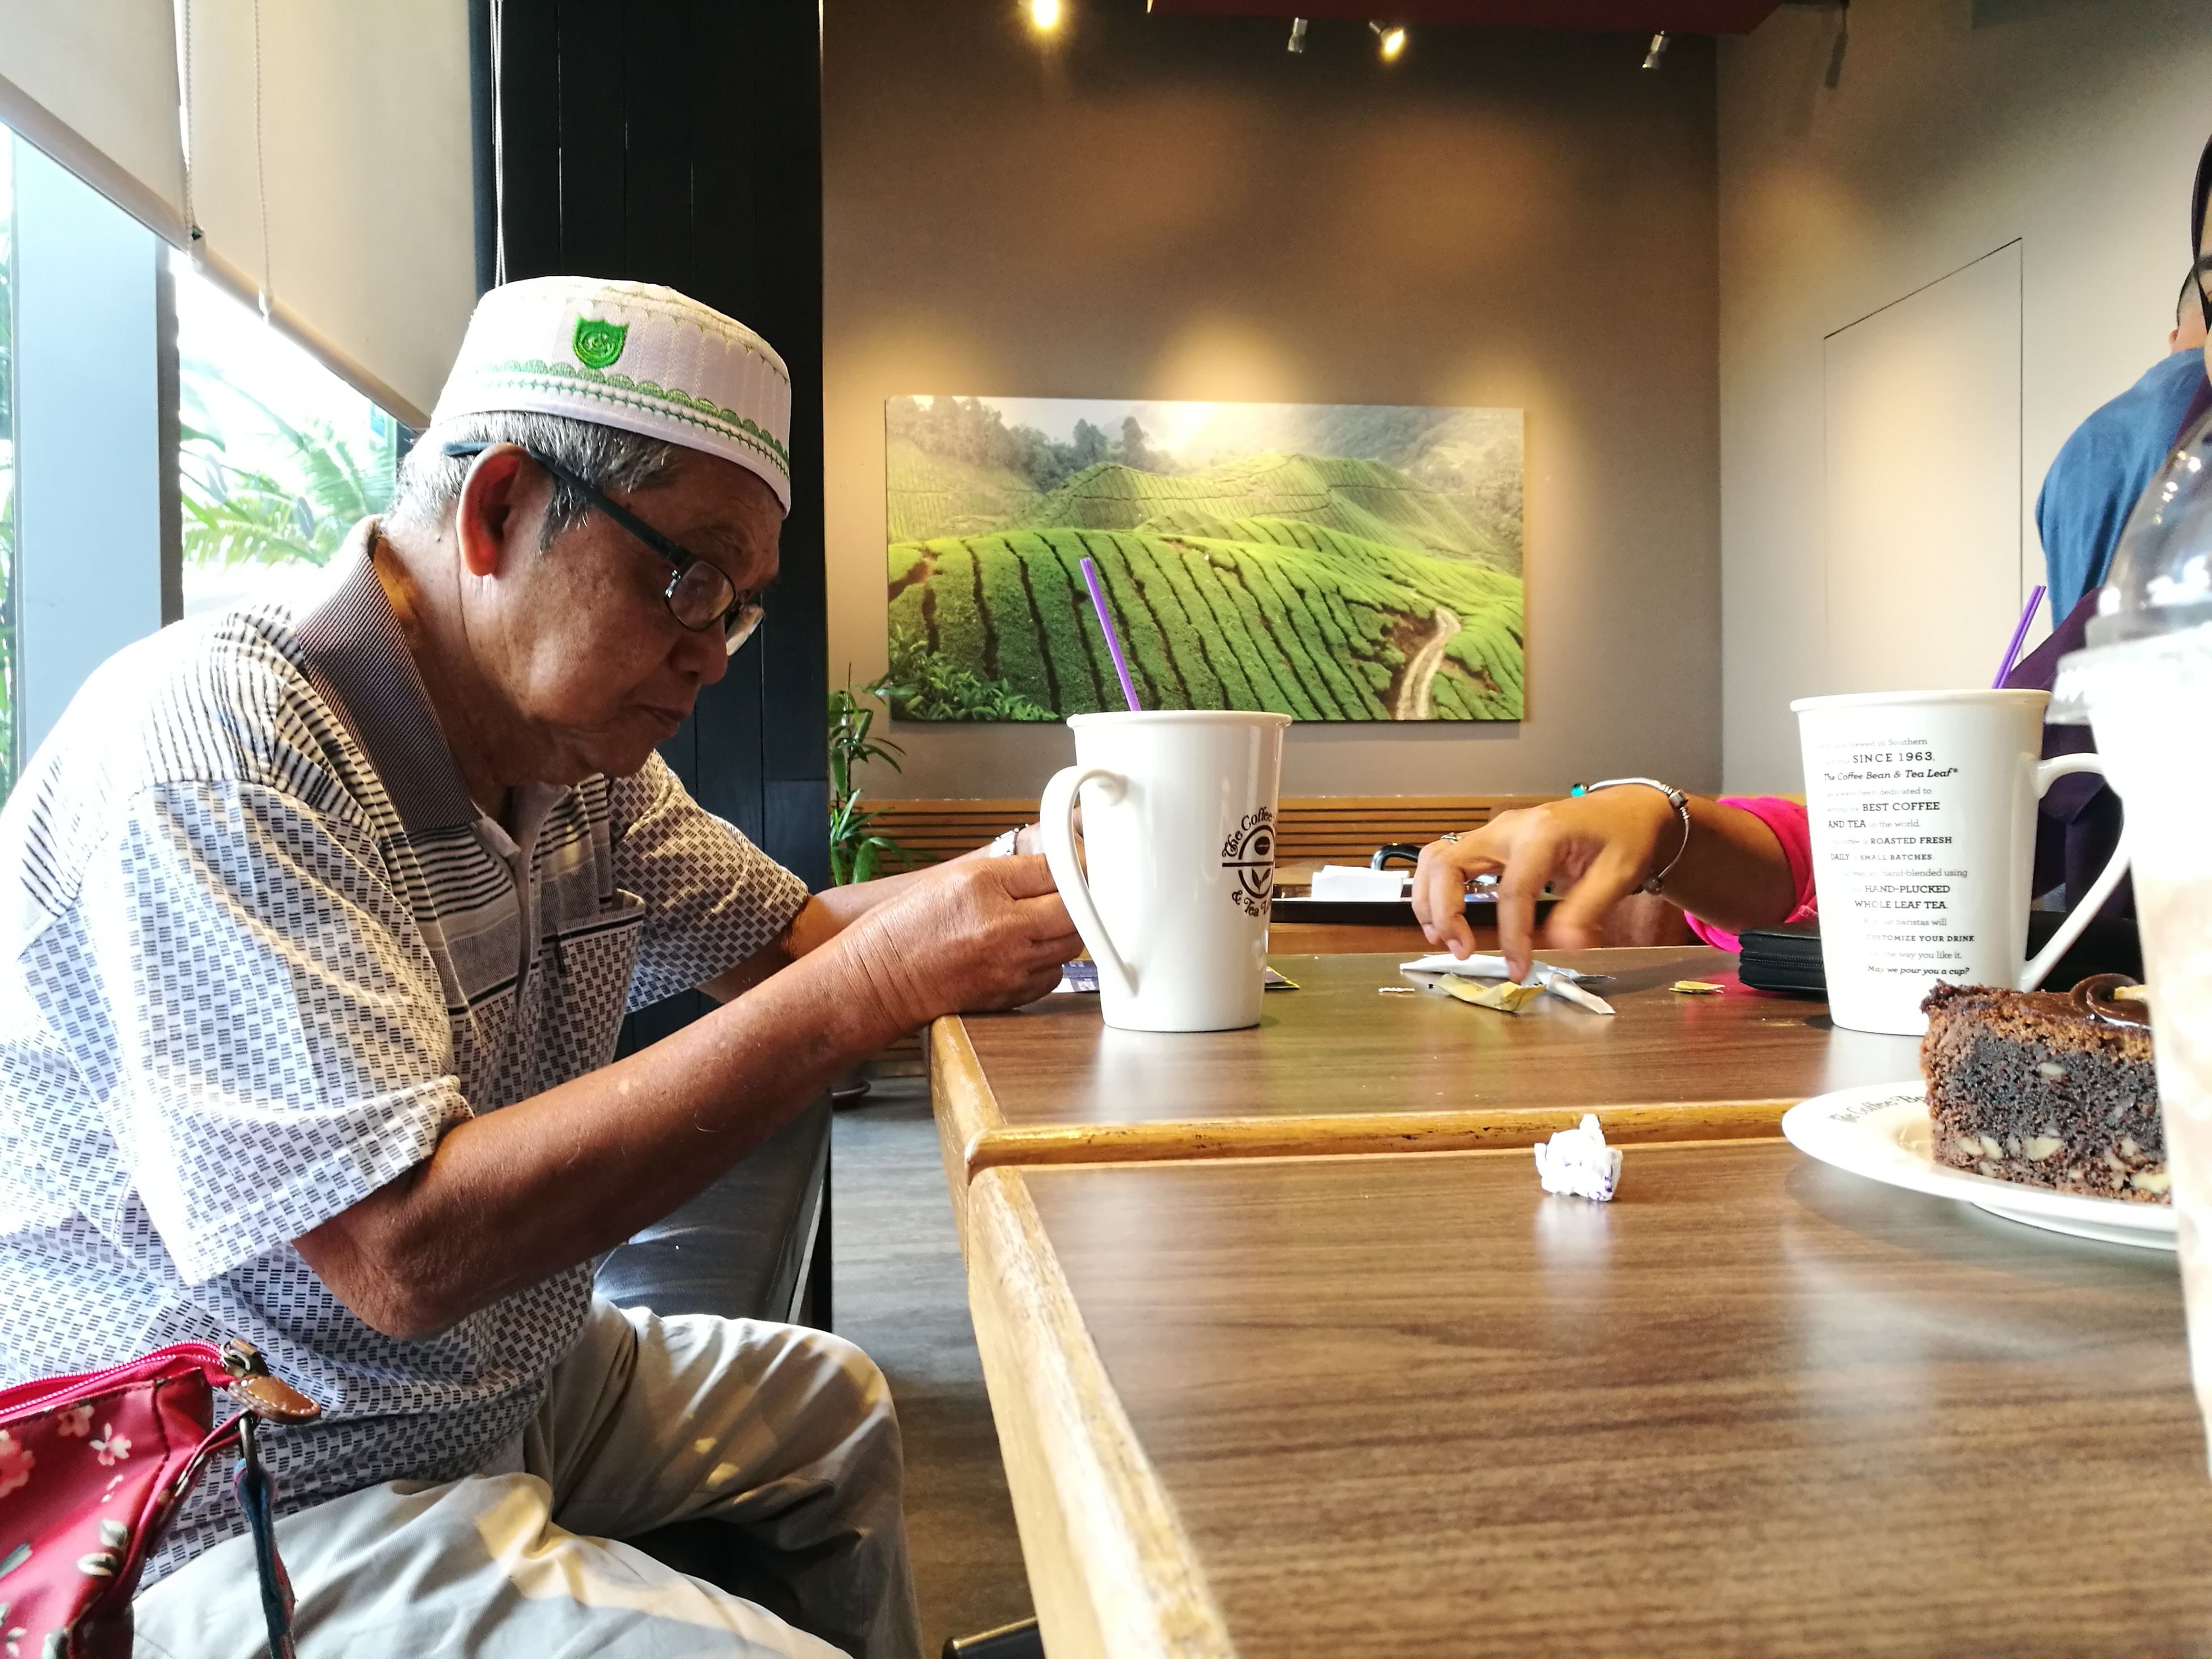 cafe, indoors, adults only, men, only men, young adult, sitting, adult, people, coffee shop, bakery, business finance and industry, table, eyeglasses, occupation, one man only, day